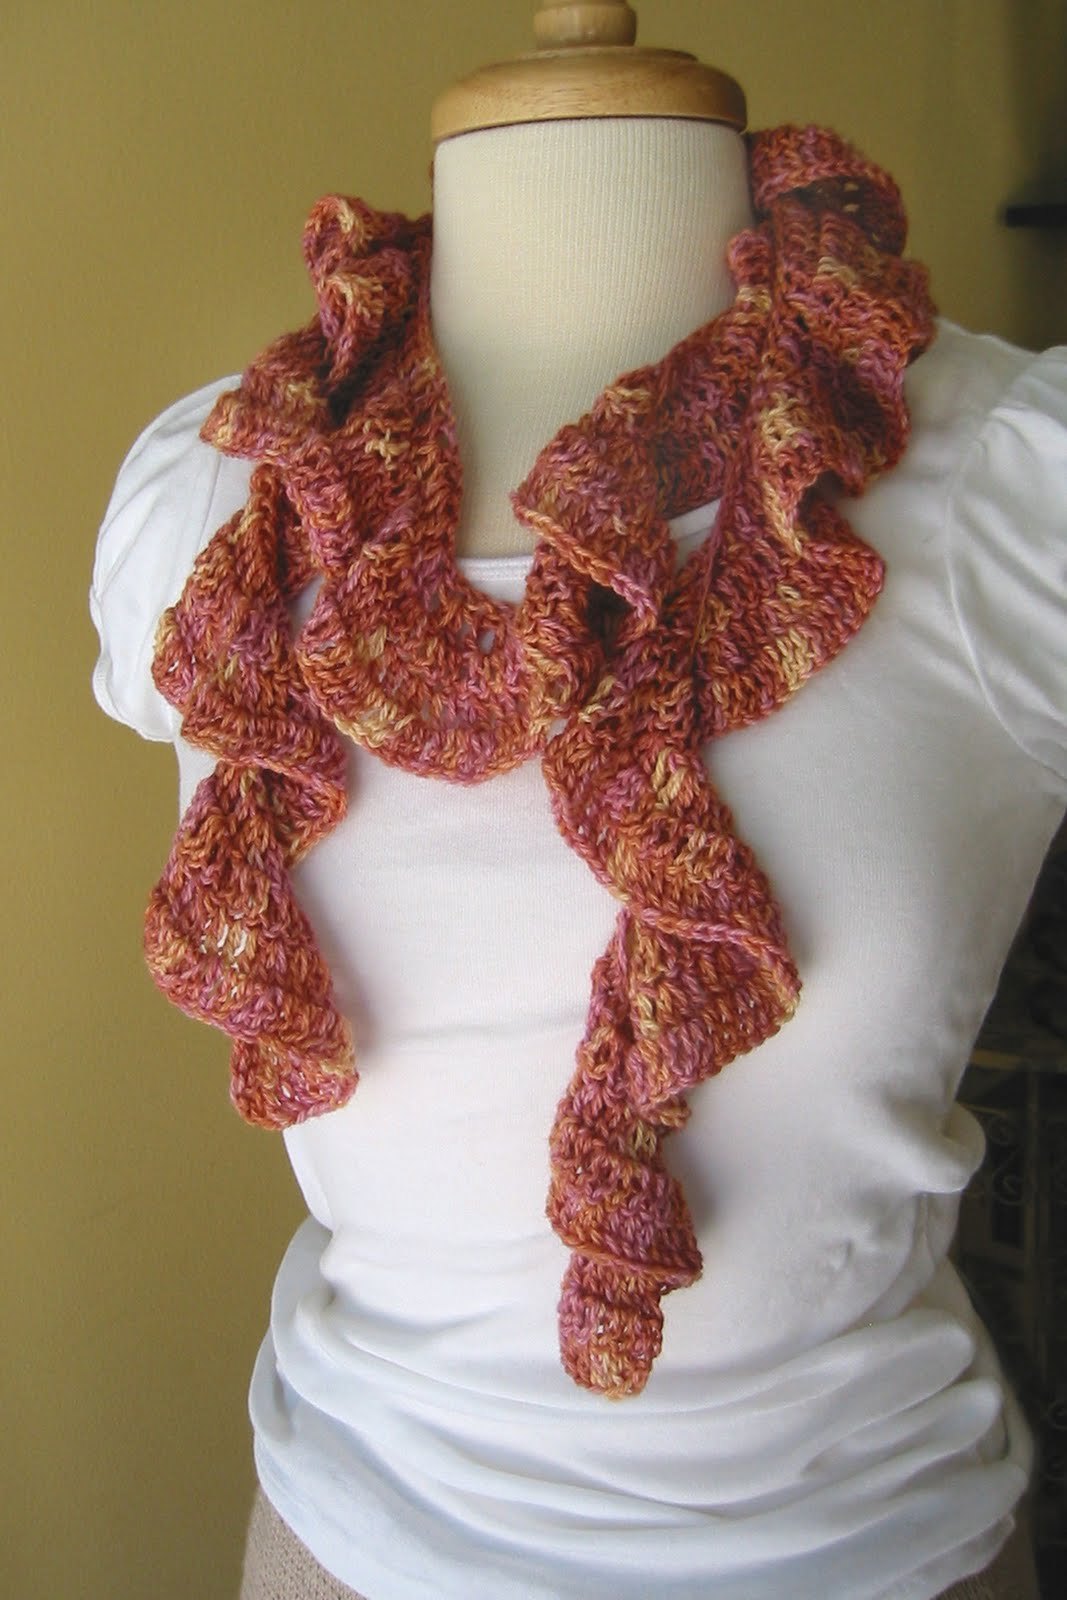 Free Crochet Pattern Spiral Scarf : RUFFLE SPIRAL CROCHET SCARF PATTERN ? Easy Crochet Patterns